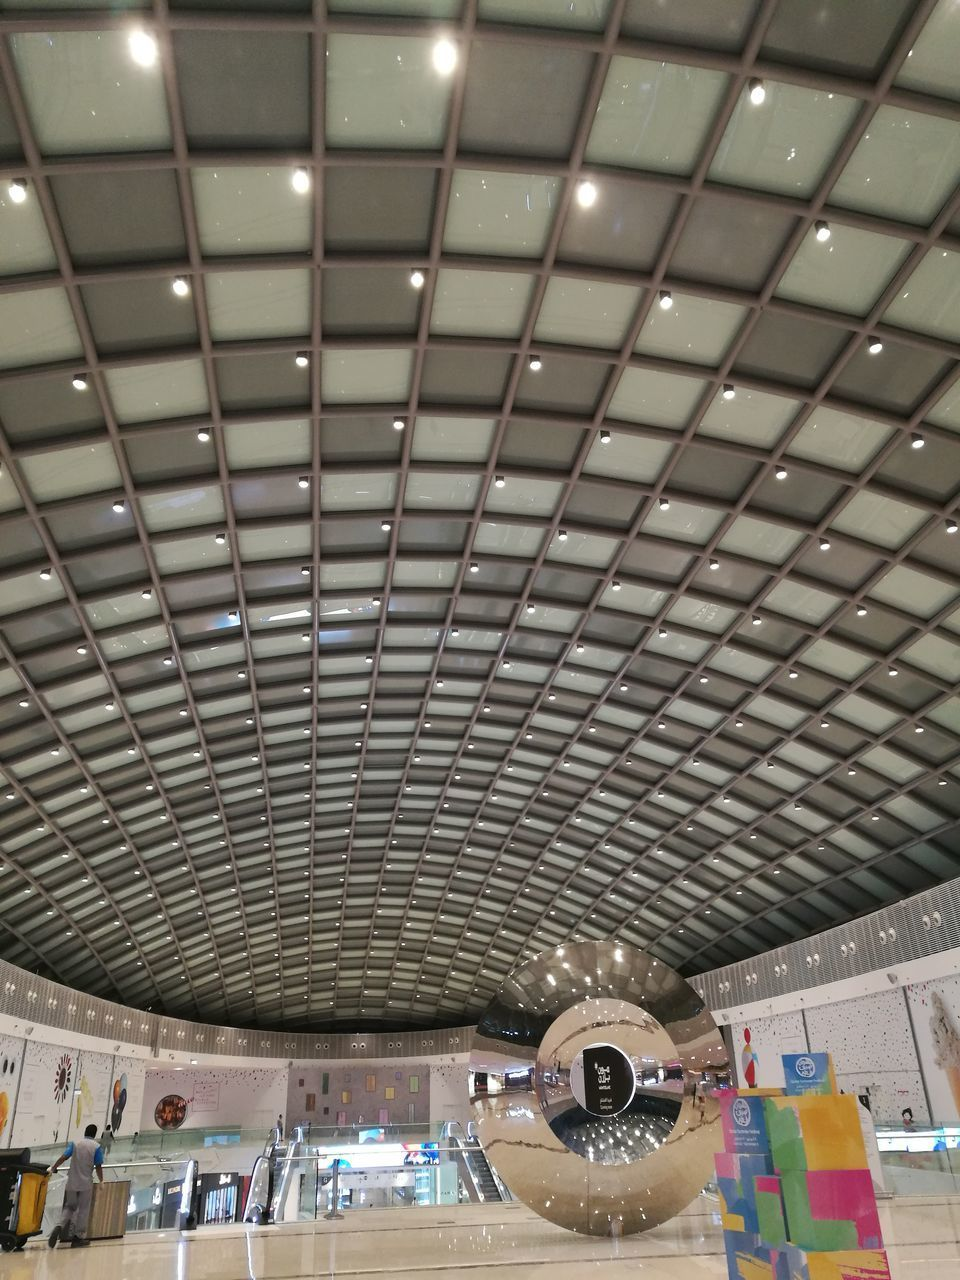 ceiling, indoors, transportation, architecture, real people, technology, day